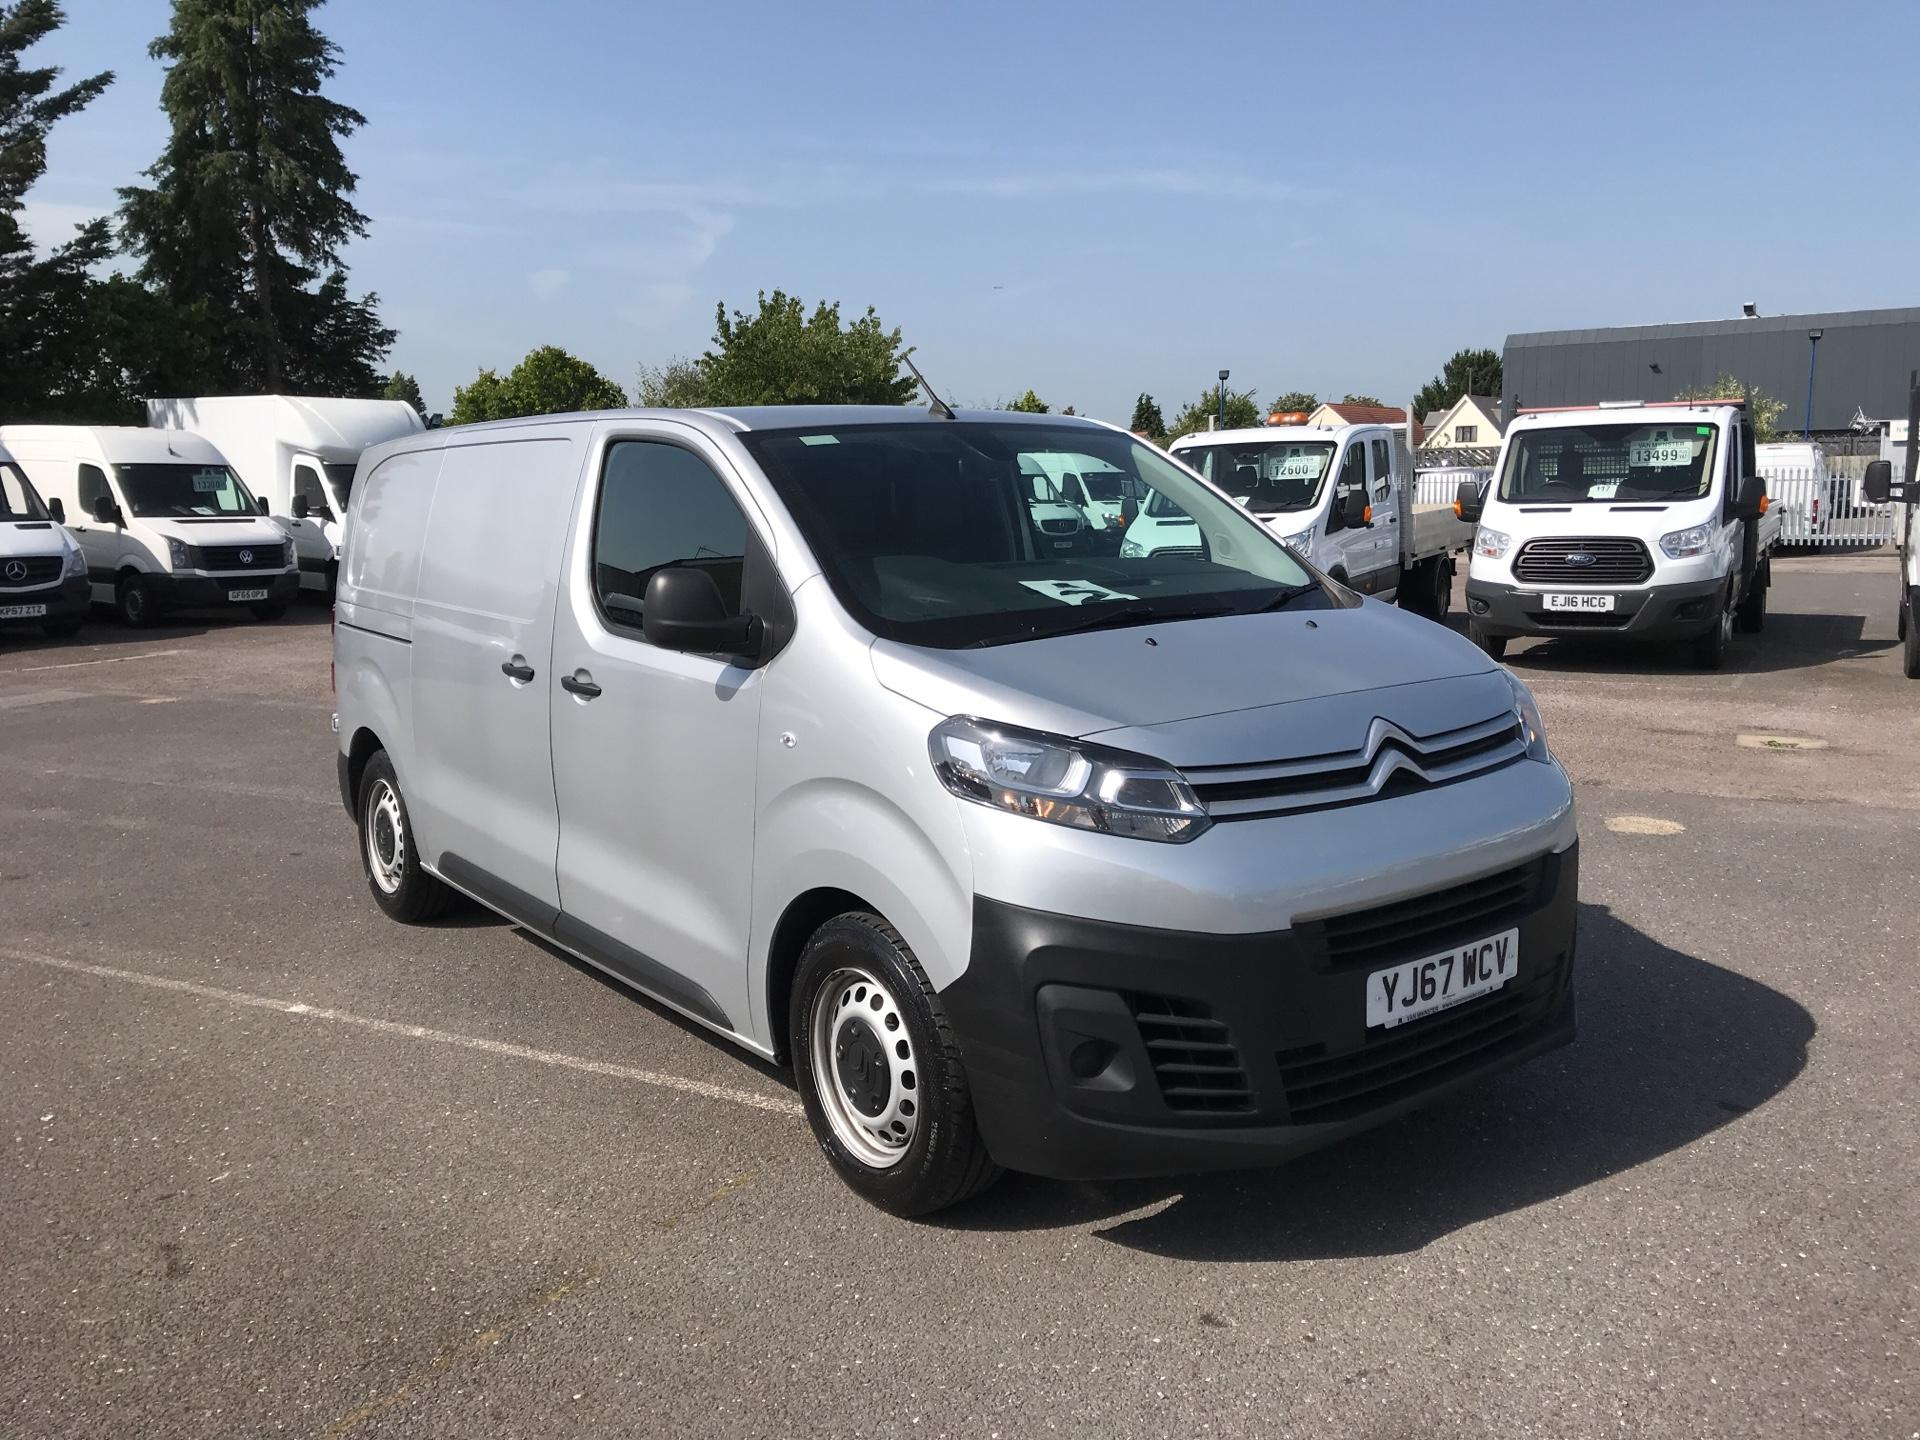 2017 Citroen Dispatch 1000 1.6 Bluehdi 95 Van Enterprise Euro 6 (YJ67WCV) Image 1